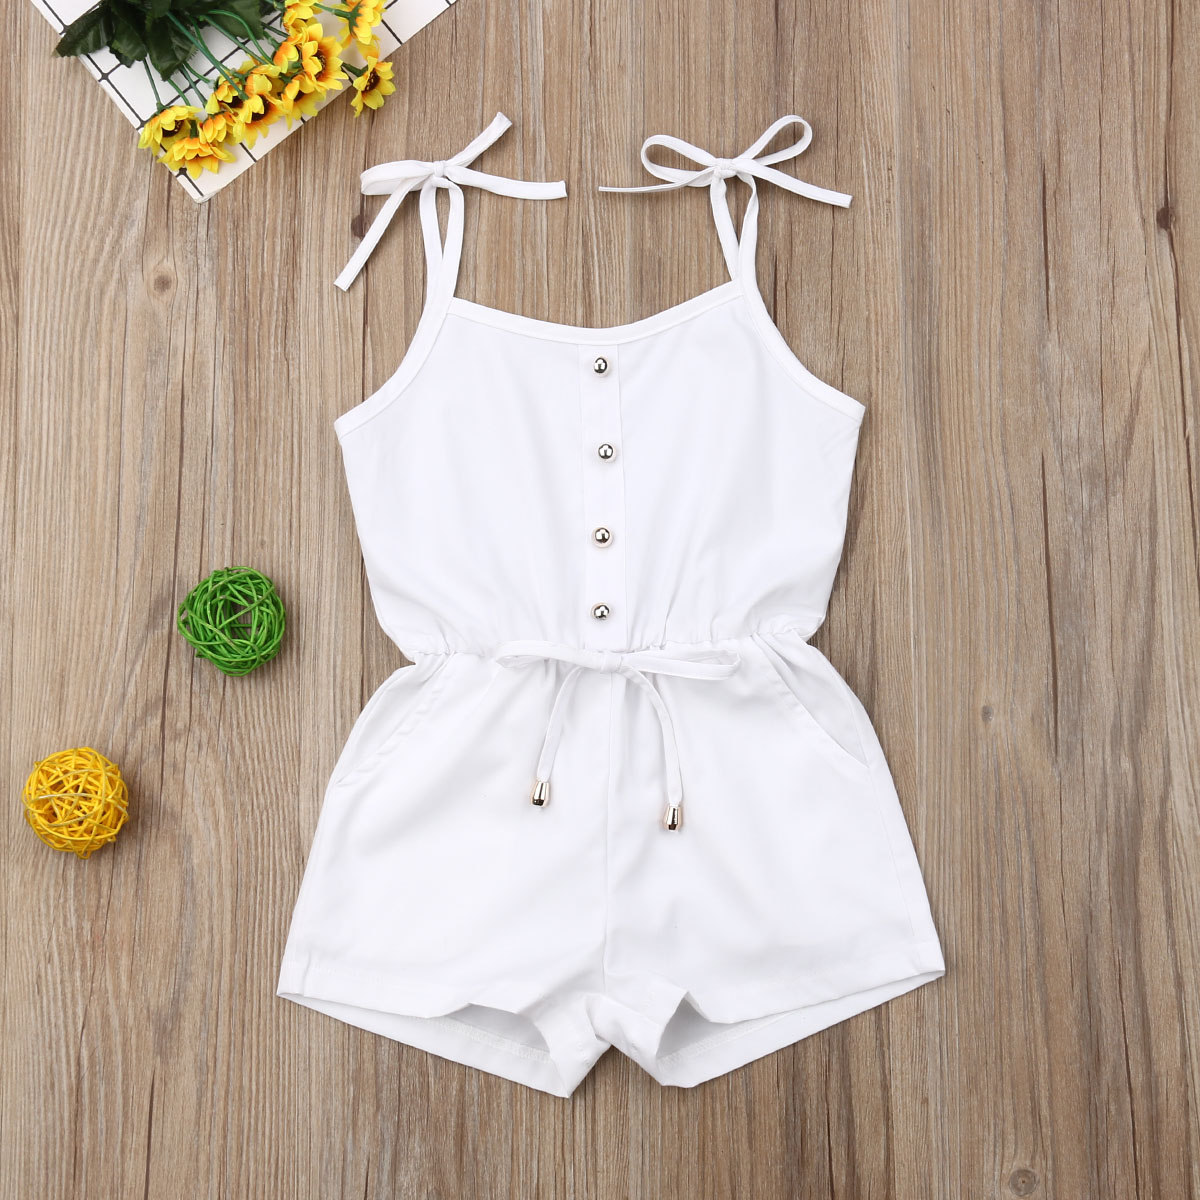 Summer Clothes Newborn Baby Girl Romper Solid Sleeveless Ruffle Straps Jumpsuit One-Piece Outfit Sunsuit Clothing